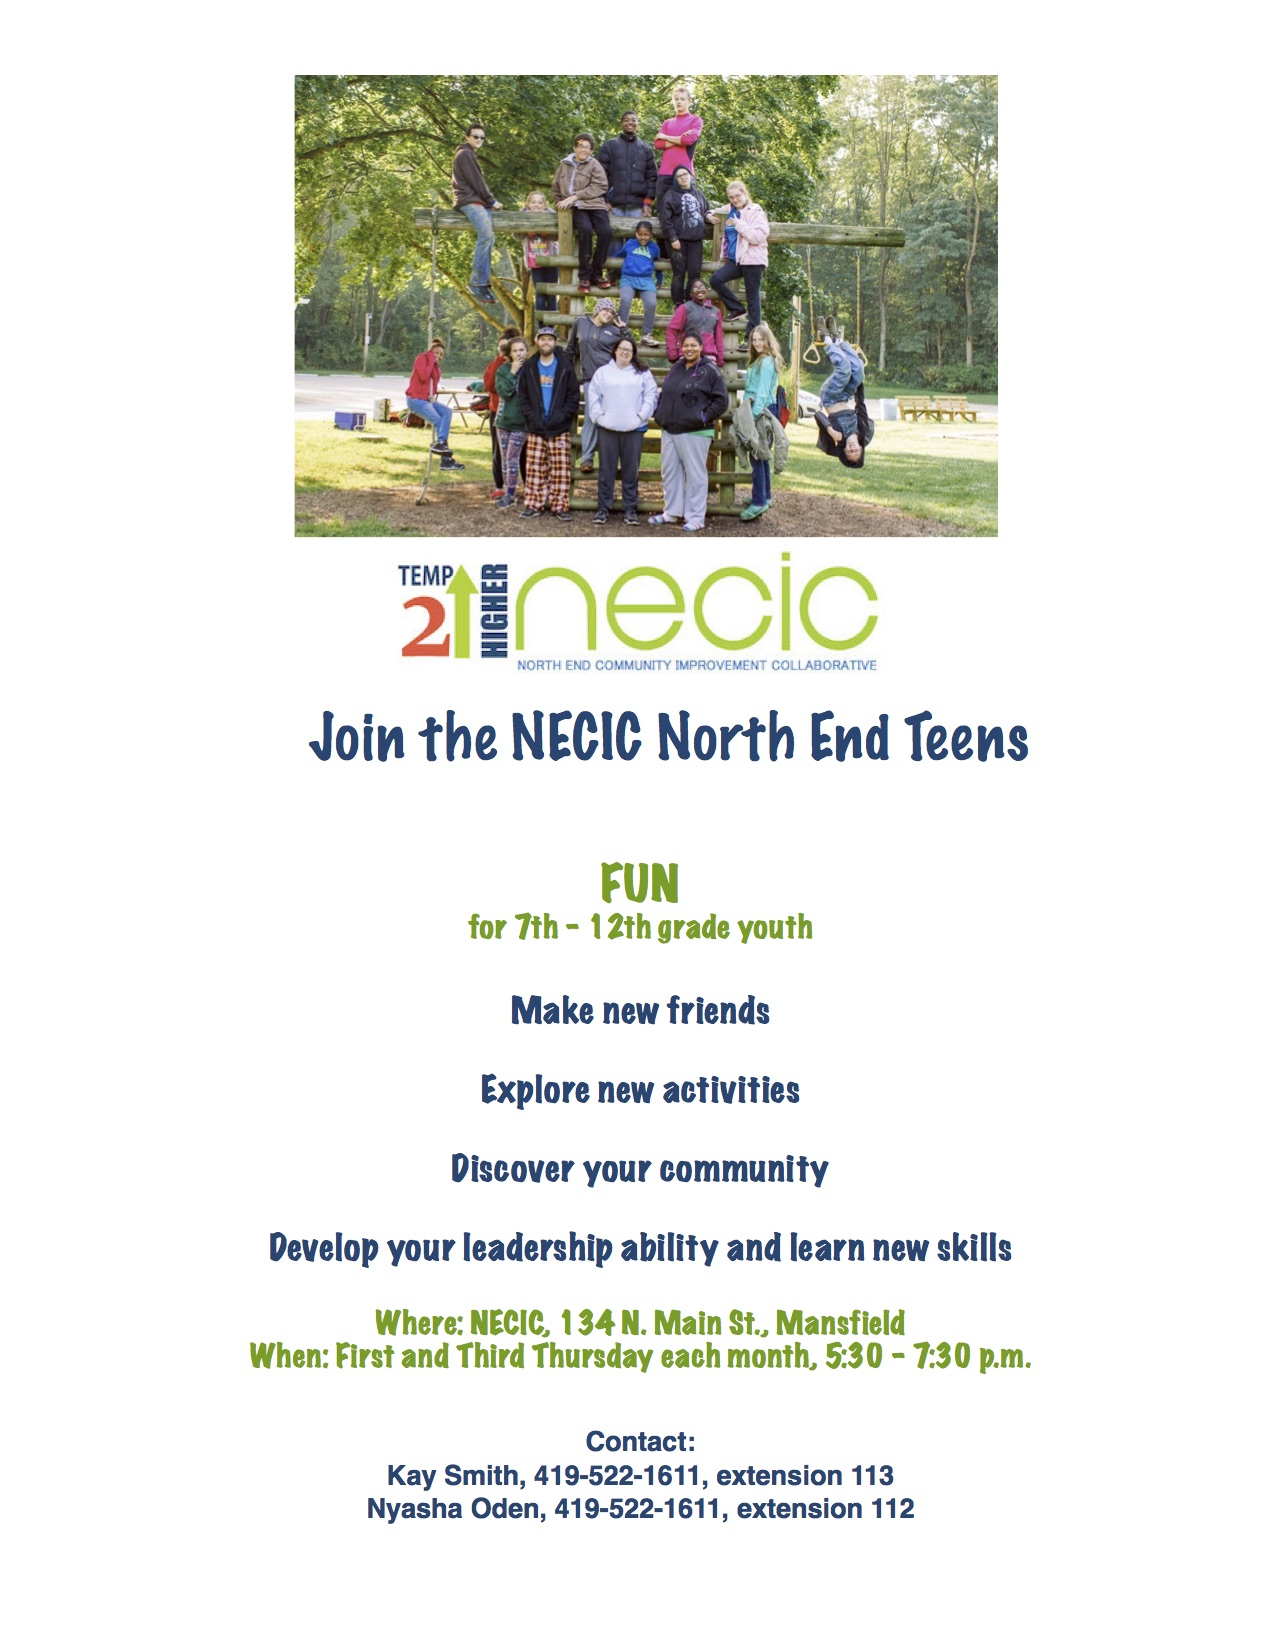 Youth Program kicks off at NECIC!